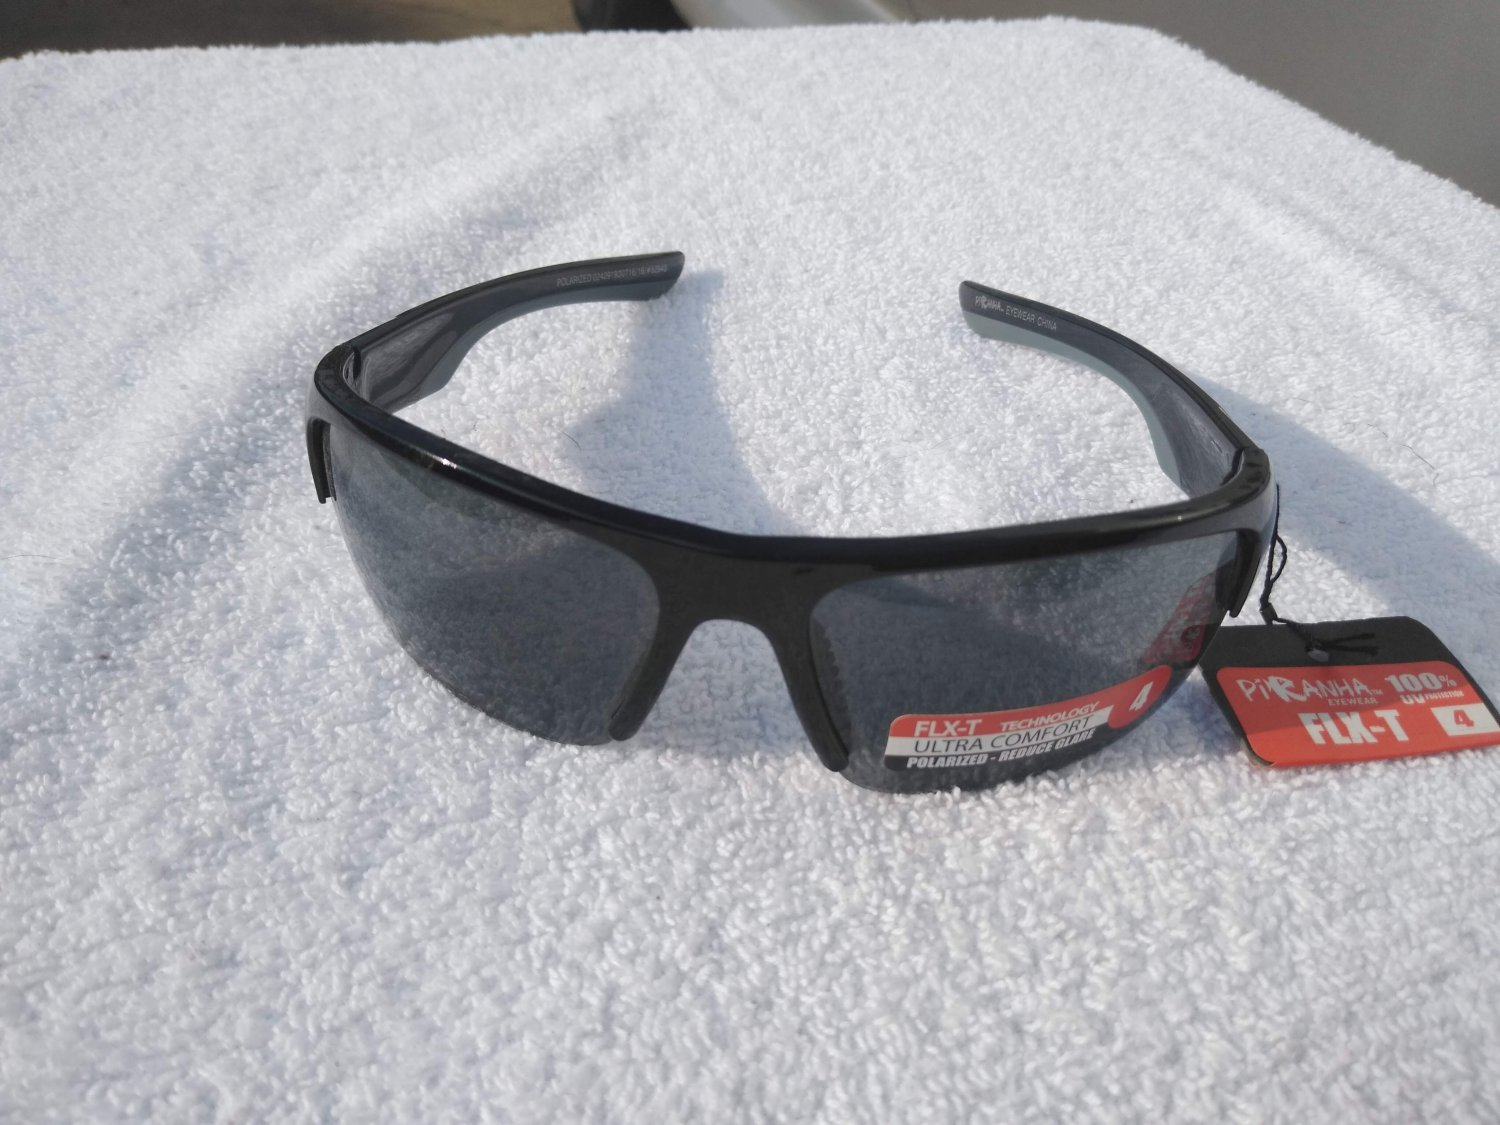 PiRanha Eyewear FLX-T Technology Sunglasses Black/Grey 100% UV 3071